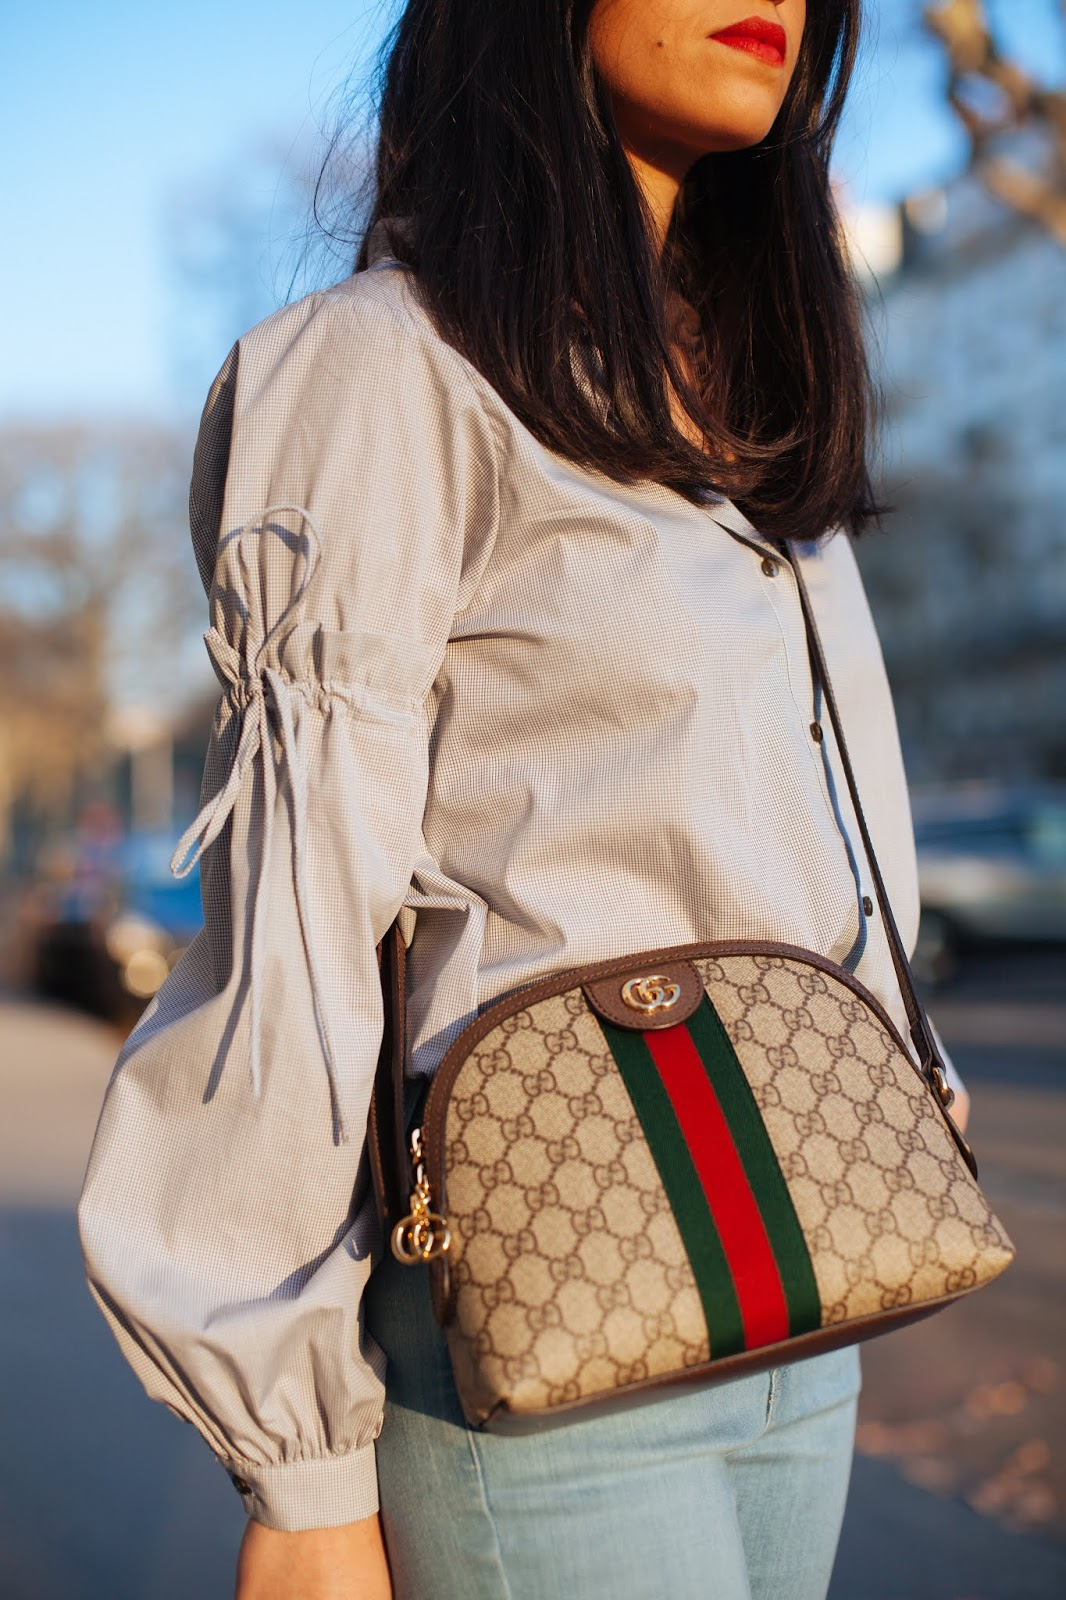 au printemps paris, blog mode lyon, blog mode paris, gucci, gucci ophidia, mode, sac gucci, mocassin gucci, modeuse, blogueuse parisienne, blogueuse lyonnaise